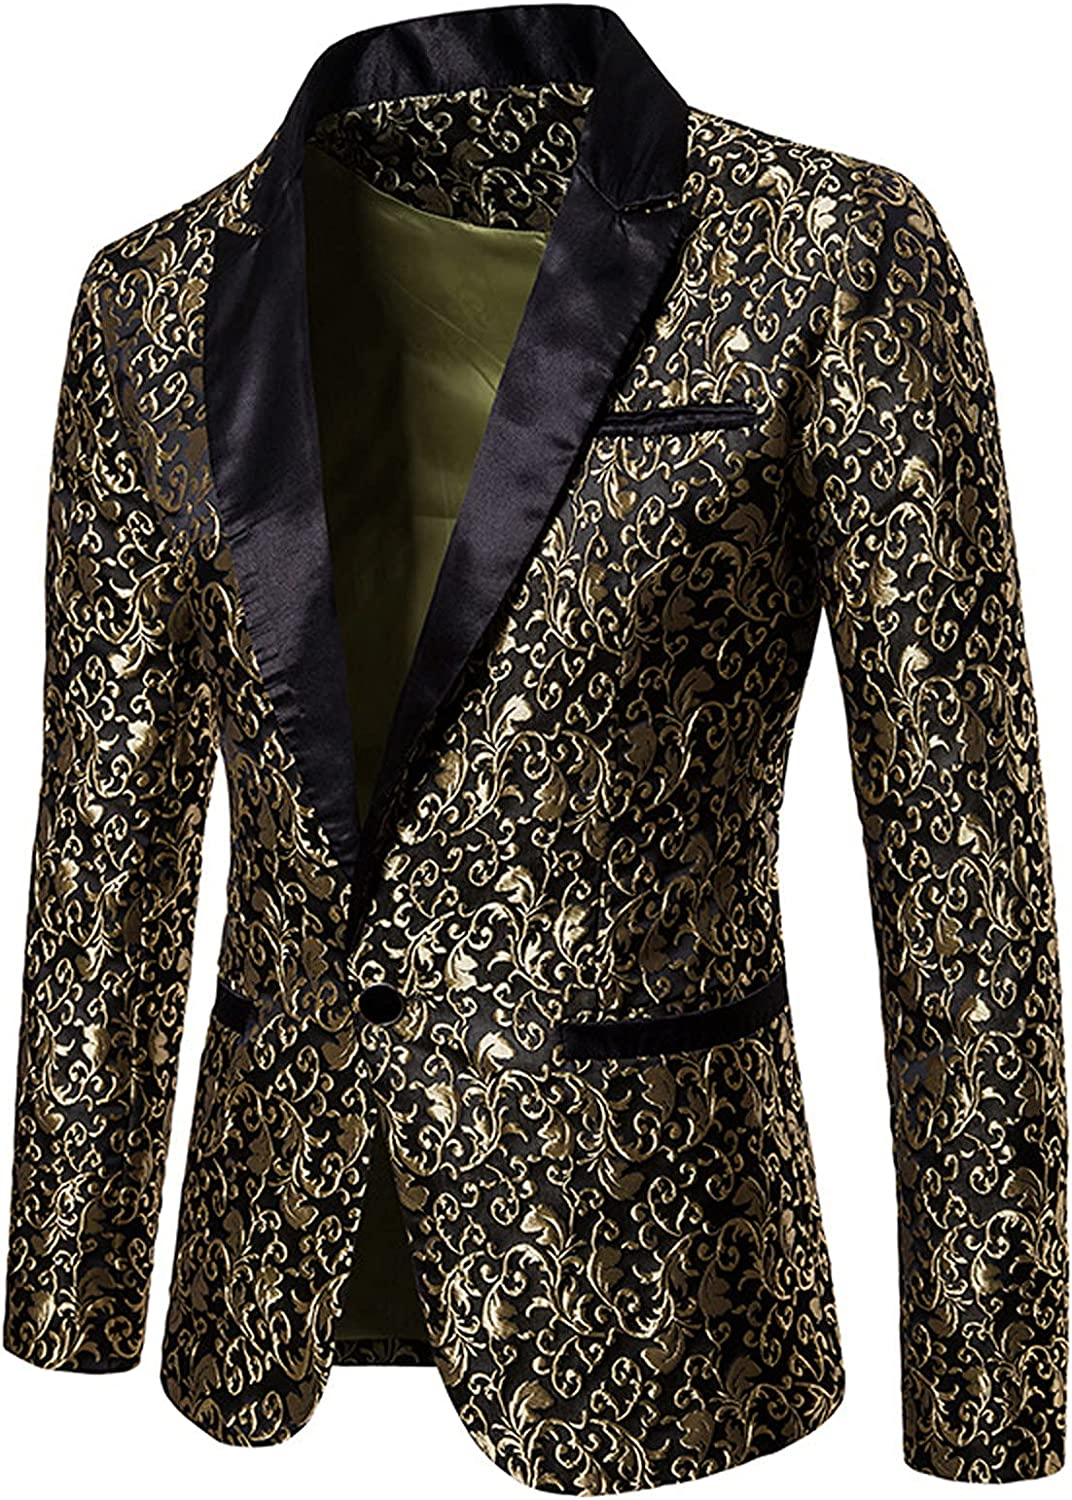 Mens Blazer Floral Printed Suit Jacket Notched Lapel One Button Suit Slim Long Sleeve Coat for Business, Prom, Party